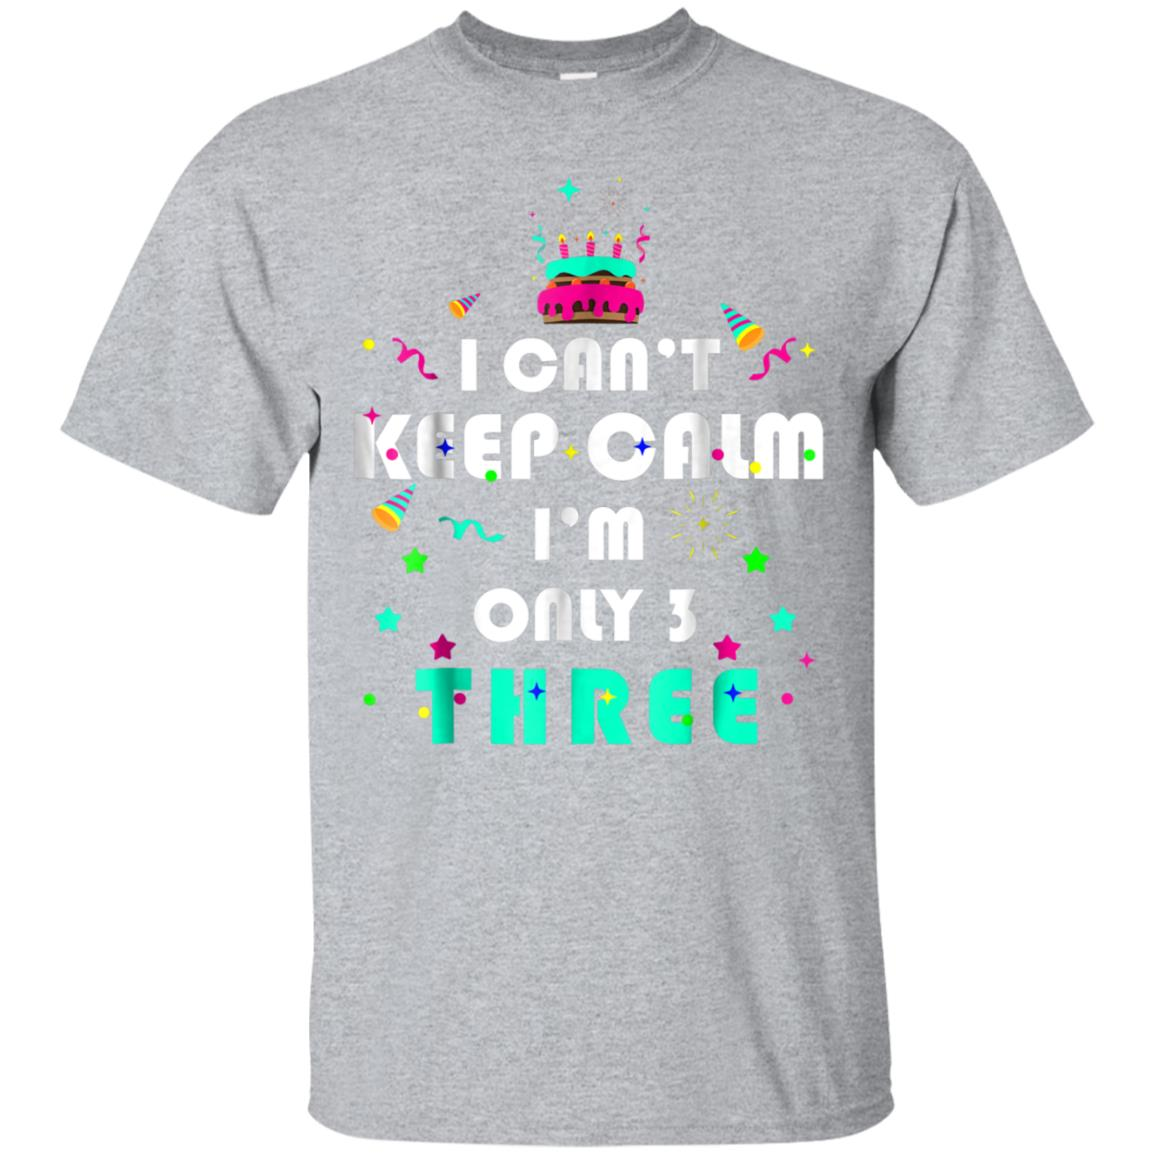 I can't keep calm i'm only 3 three birthday gifts Tshirt Kid 99promocode